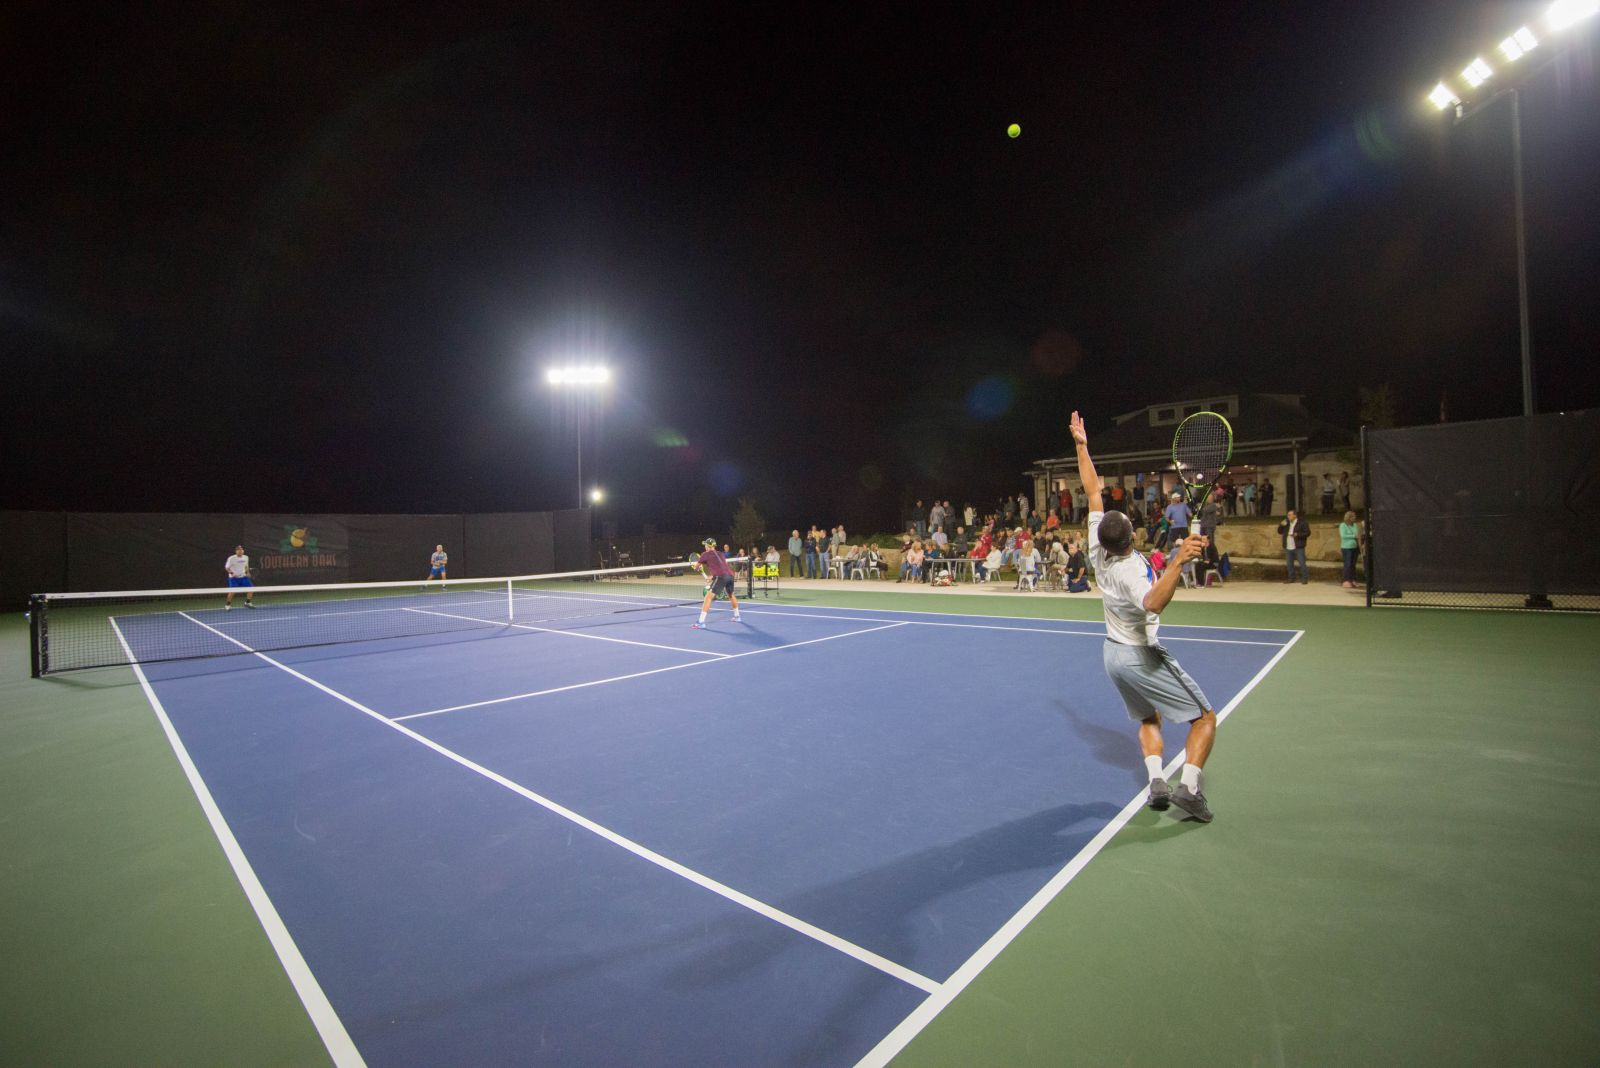 the tennis facility at night at Southern Oaks